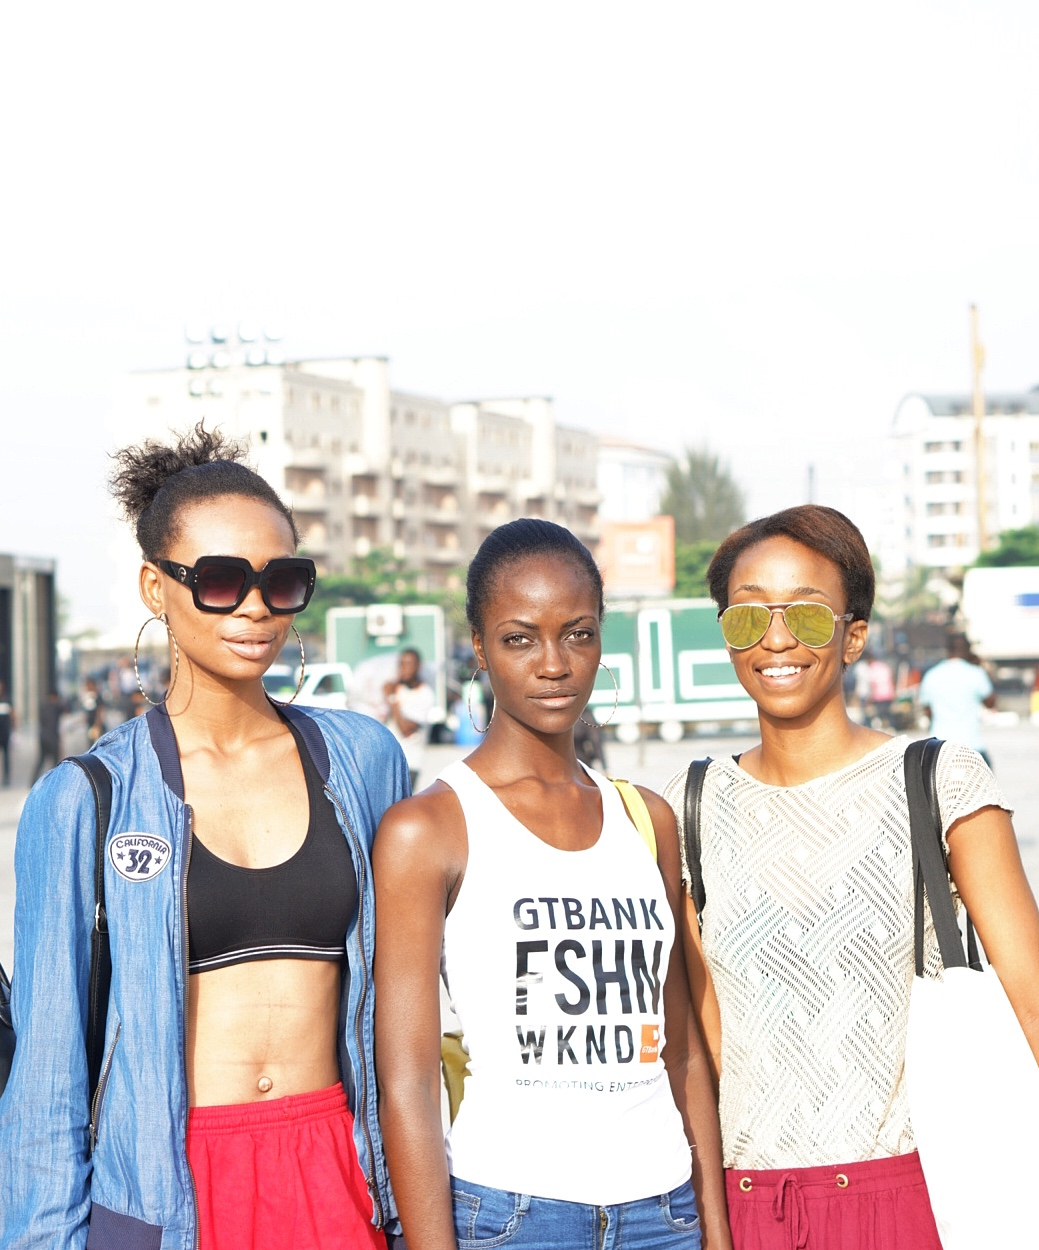 Nigerian Models Cassie Daves, Tracy Braimah and Claudia at Gtbank fashion weekend 2017